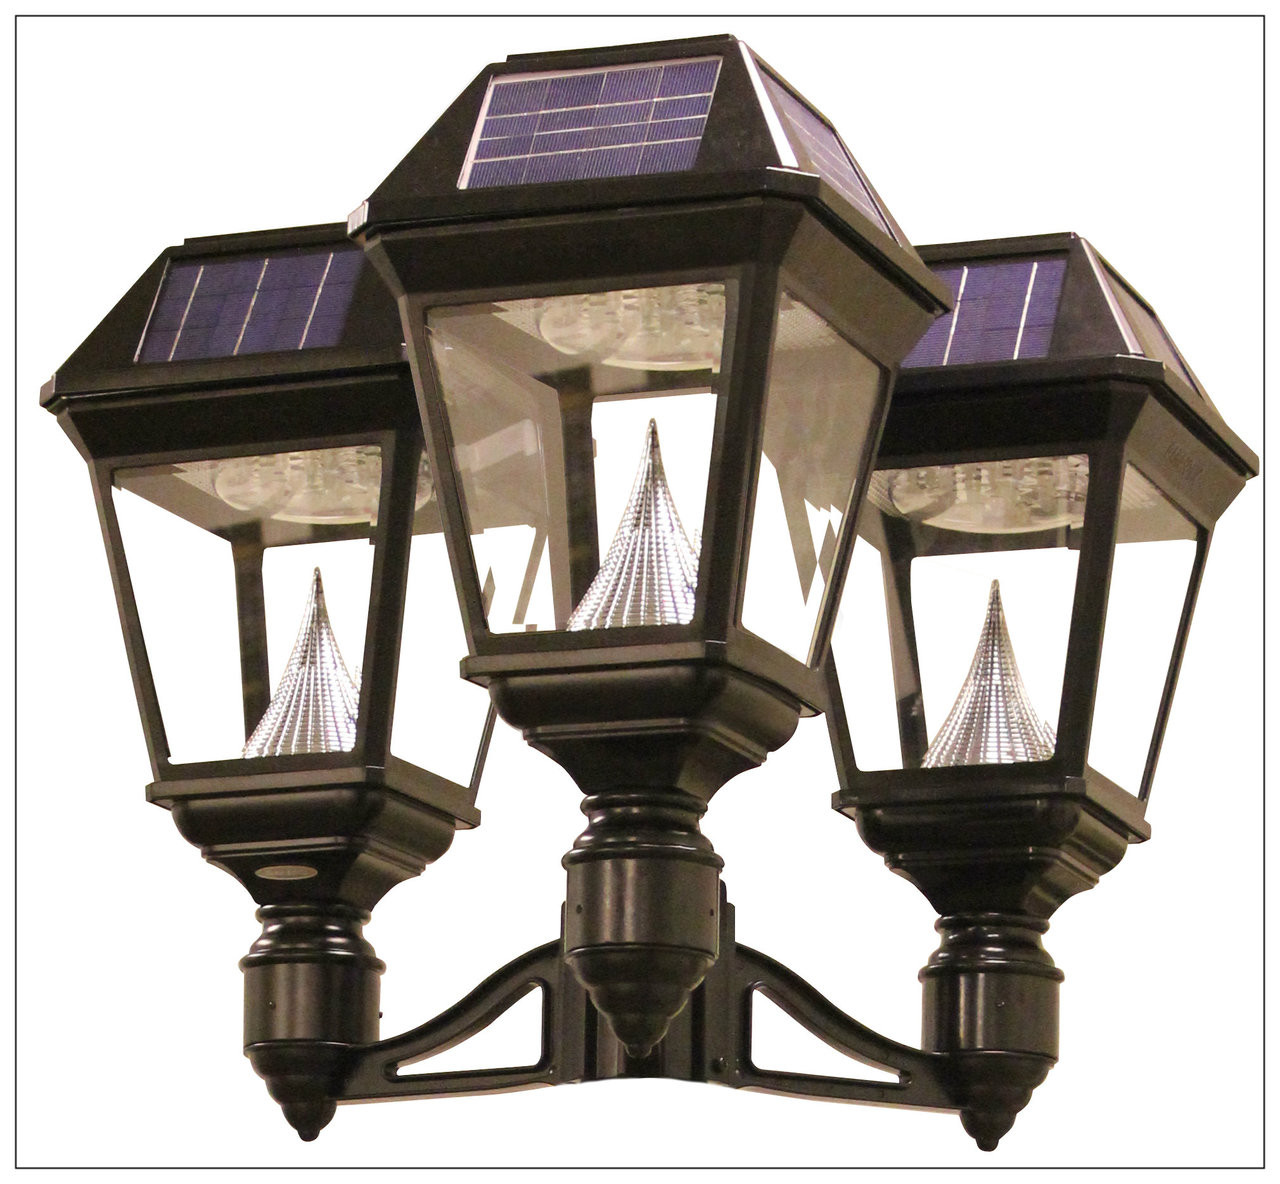 Solar Lamp Post Light Fixture Bright 900 Lumens Gama Sonic Lights